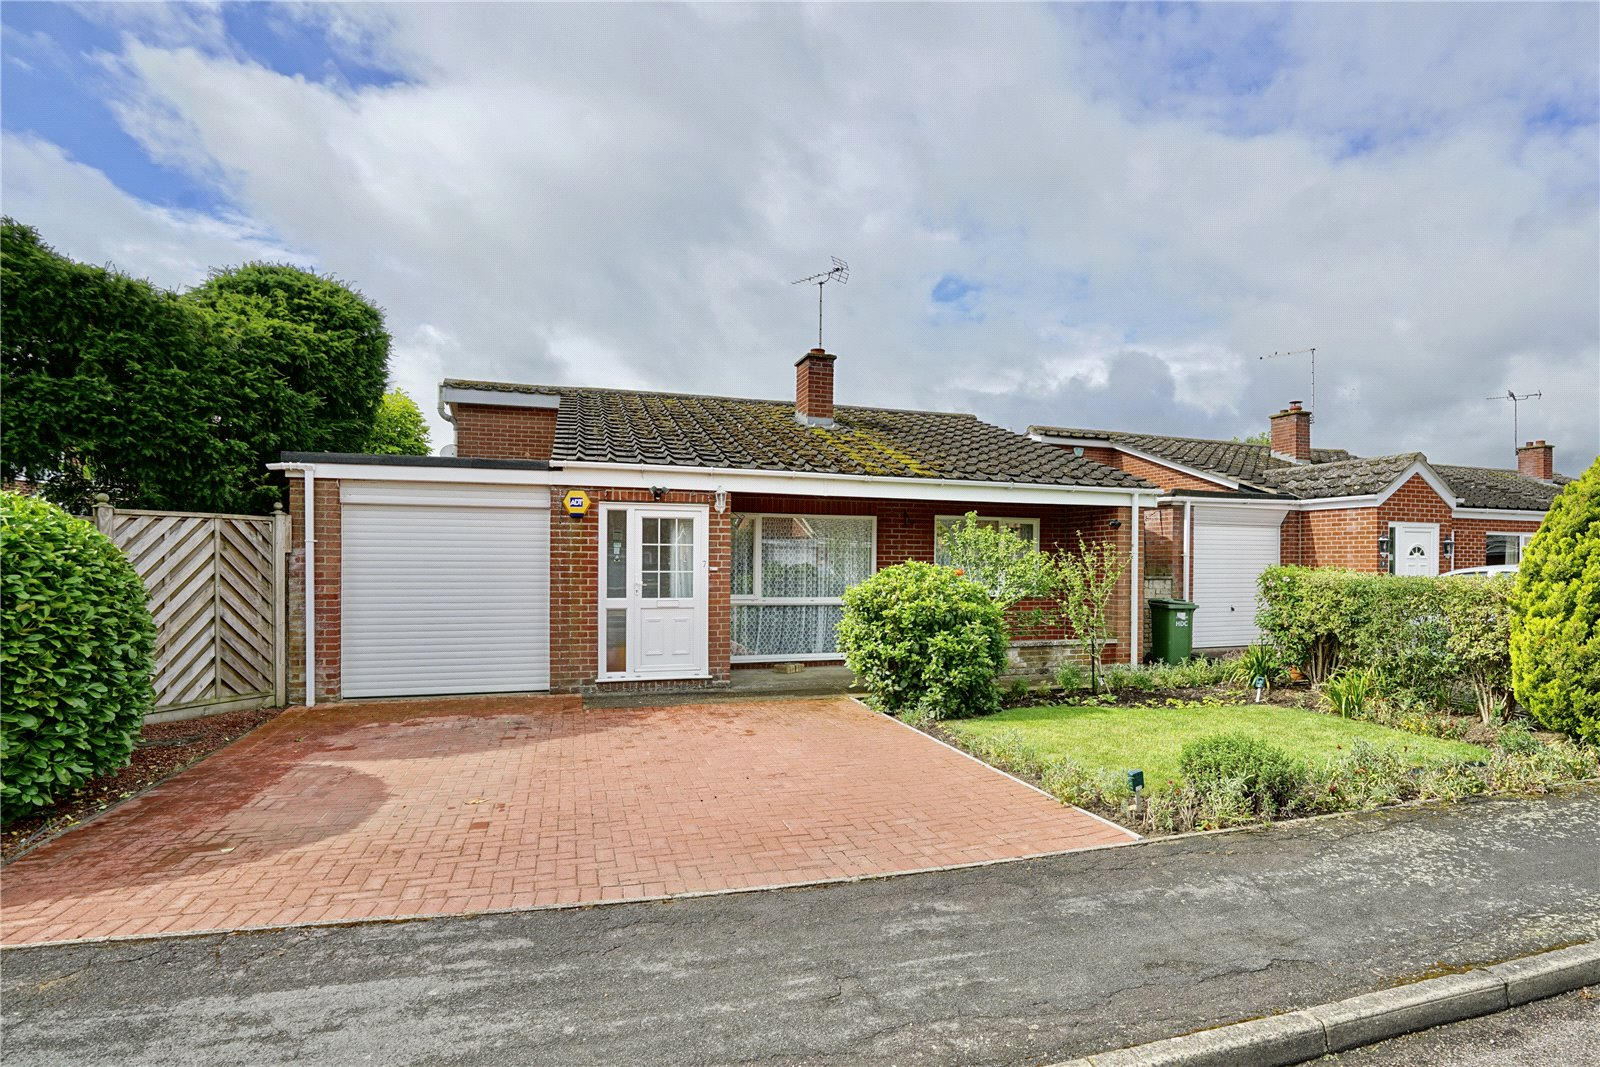 3 bed bungalow for sale in Manor Close, Great Staughton, PE19